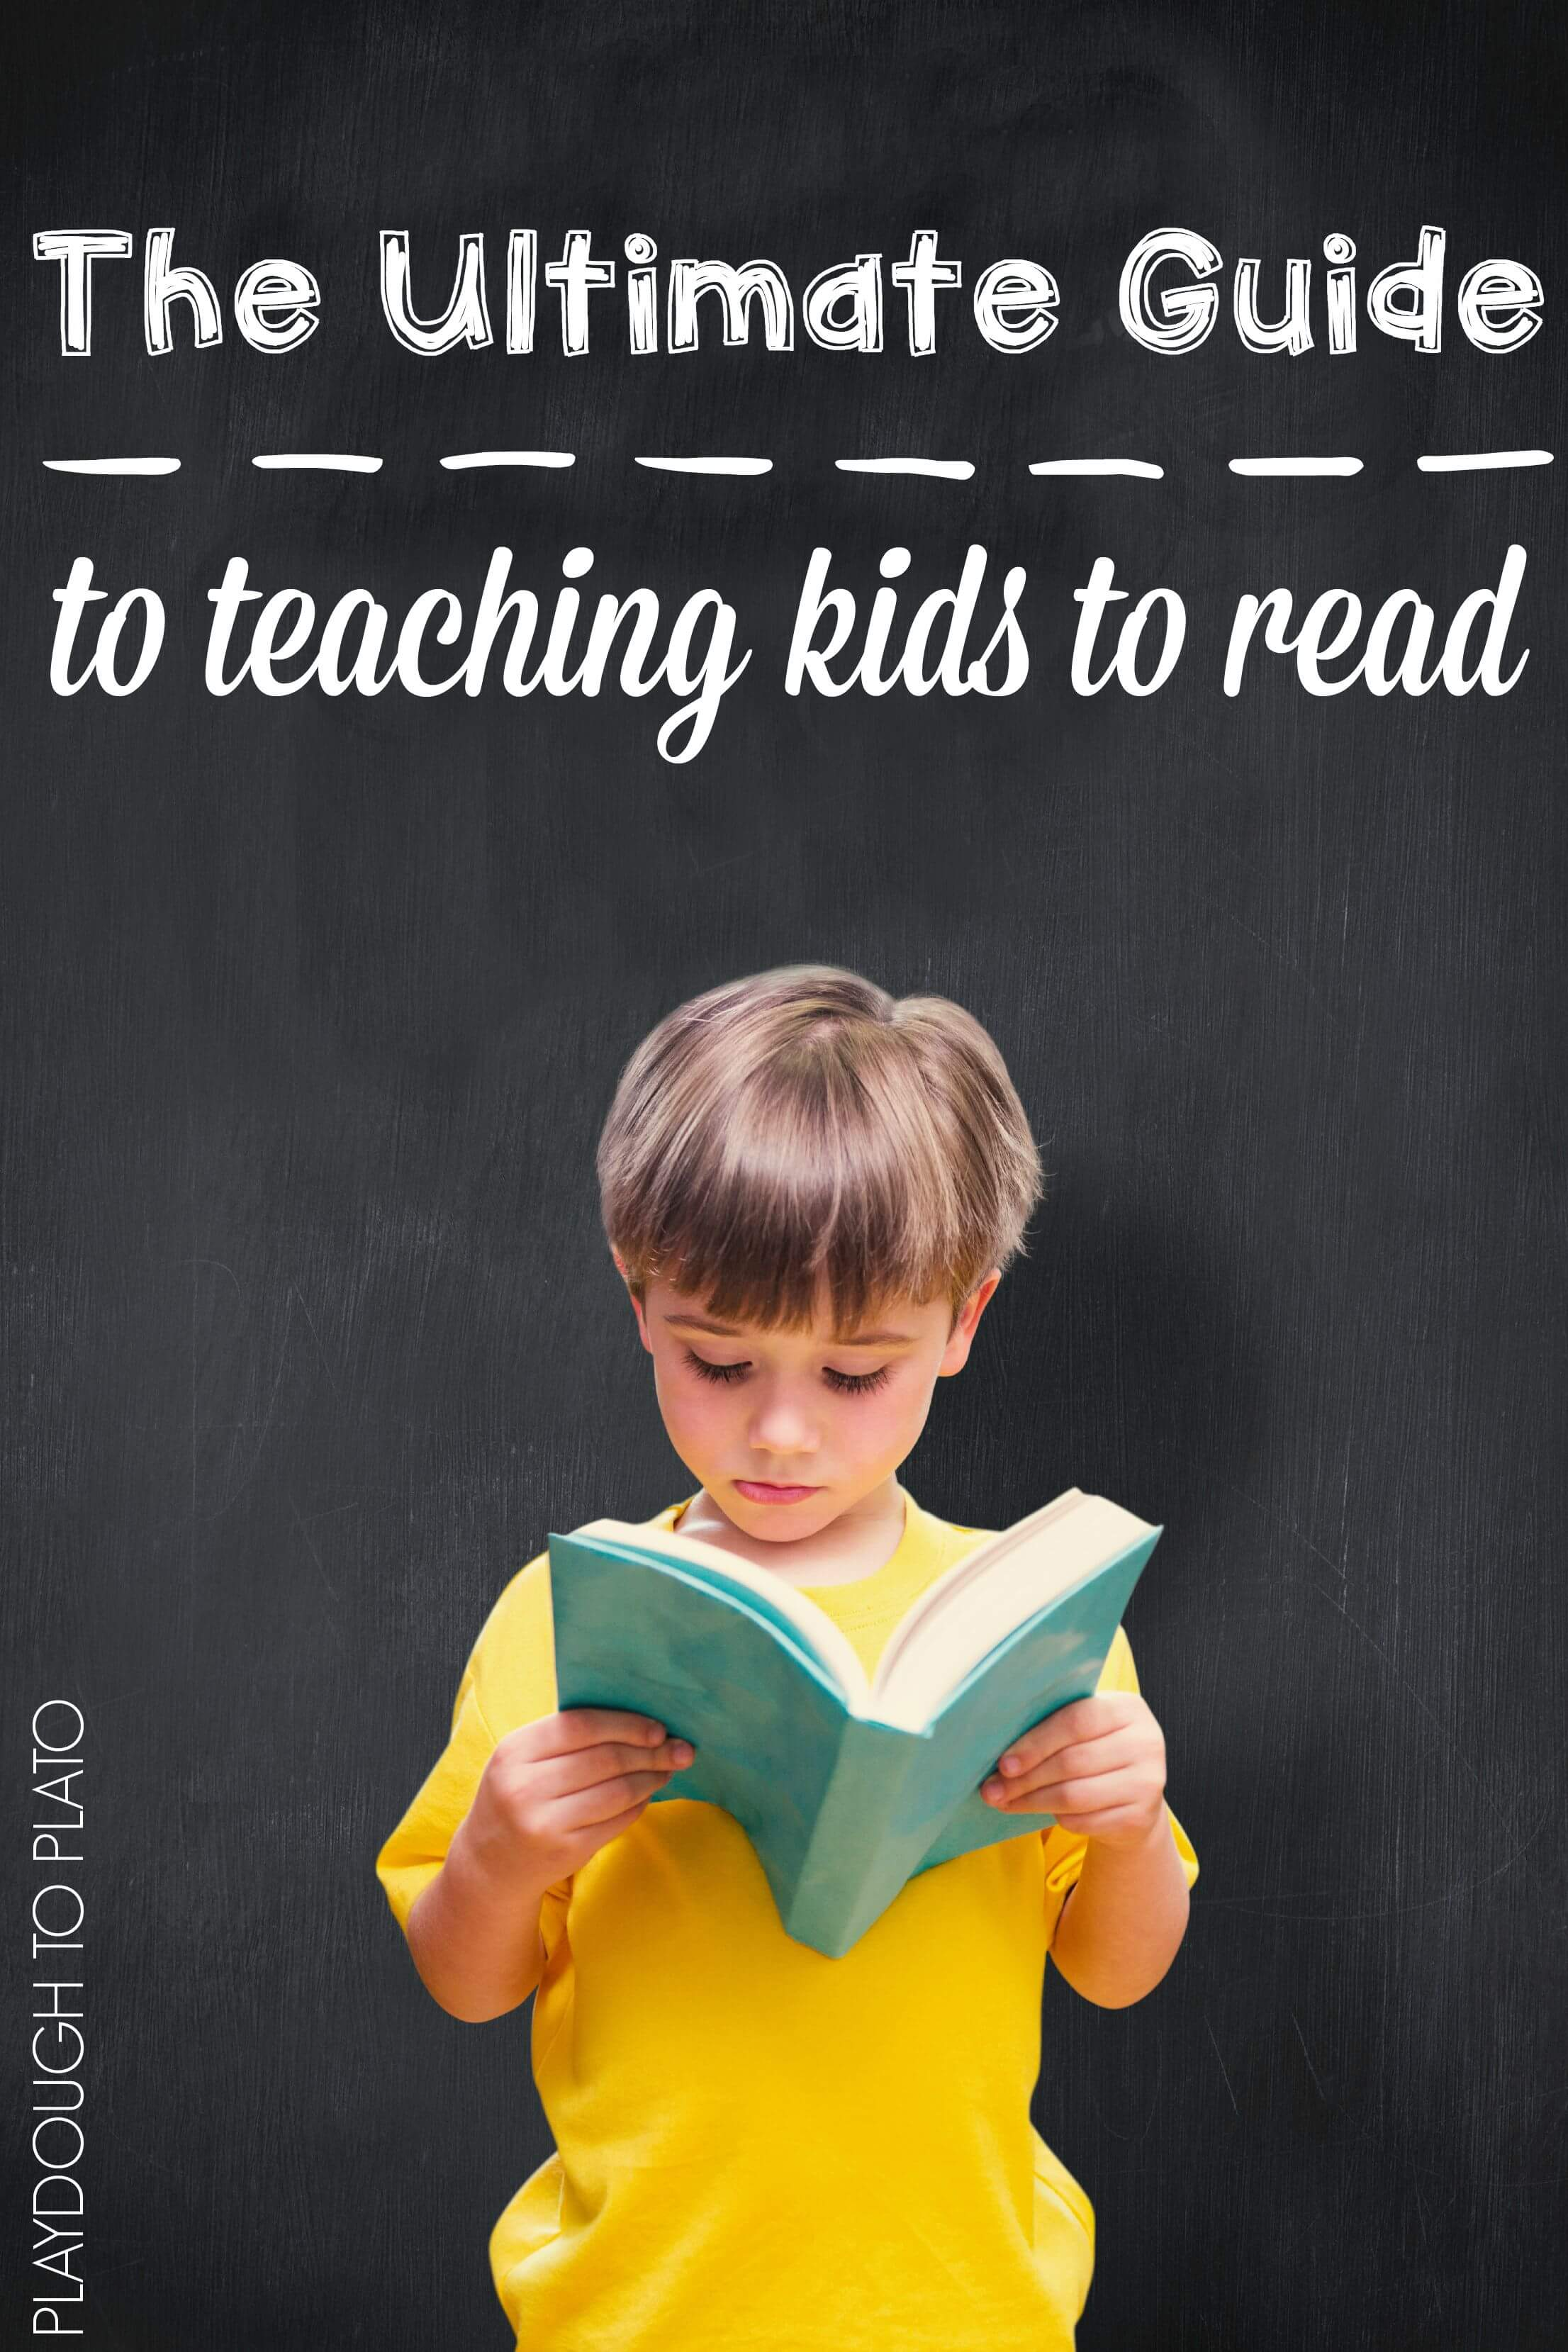 The Ultimate Guide To Teaching Kids How To Read